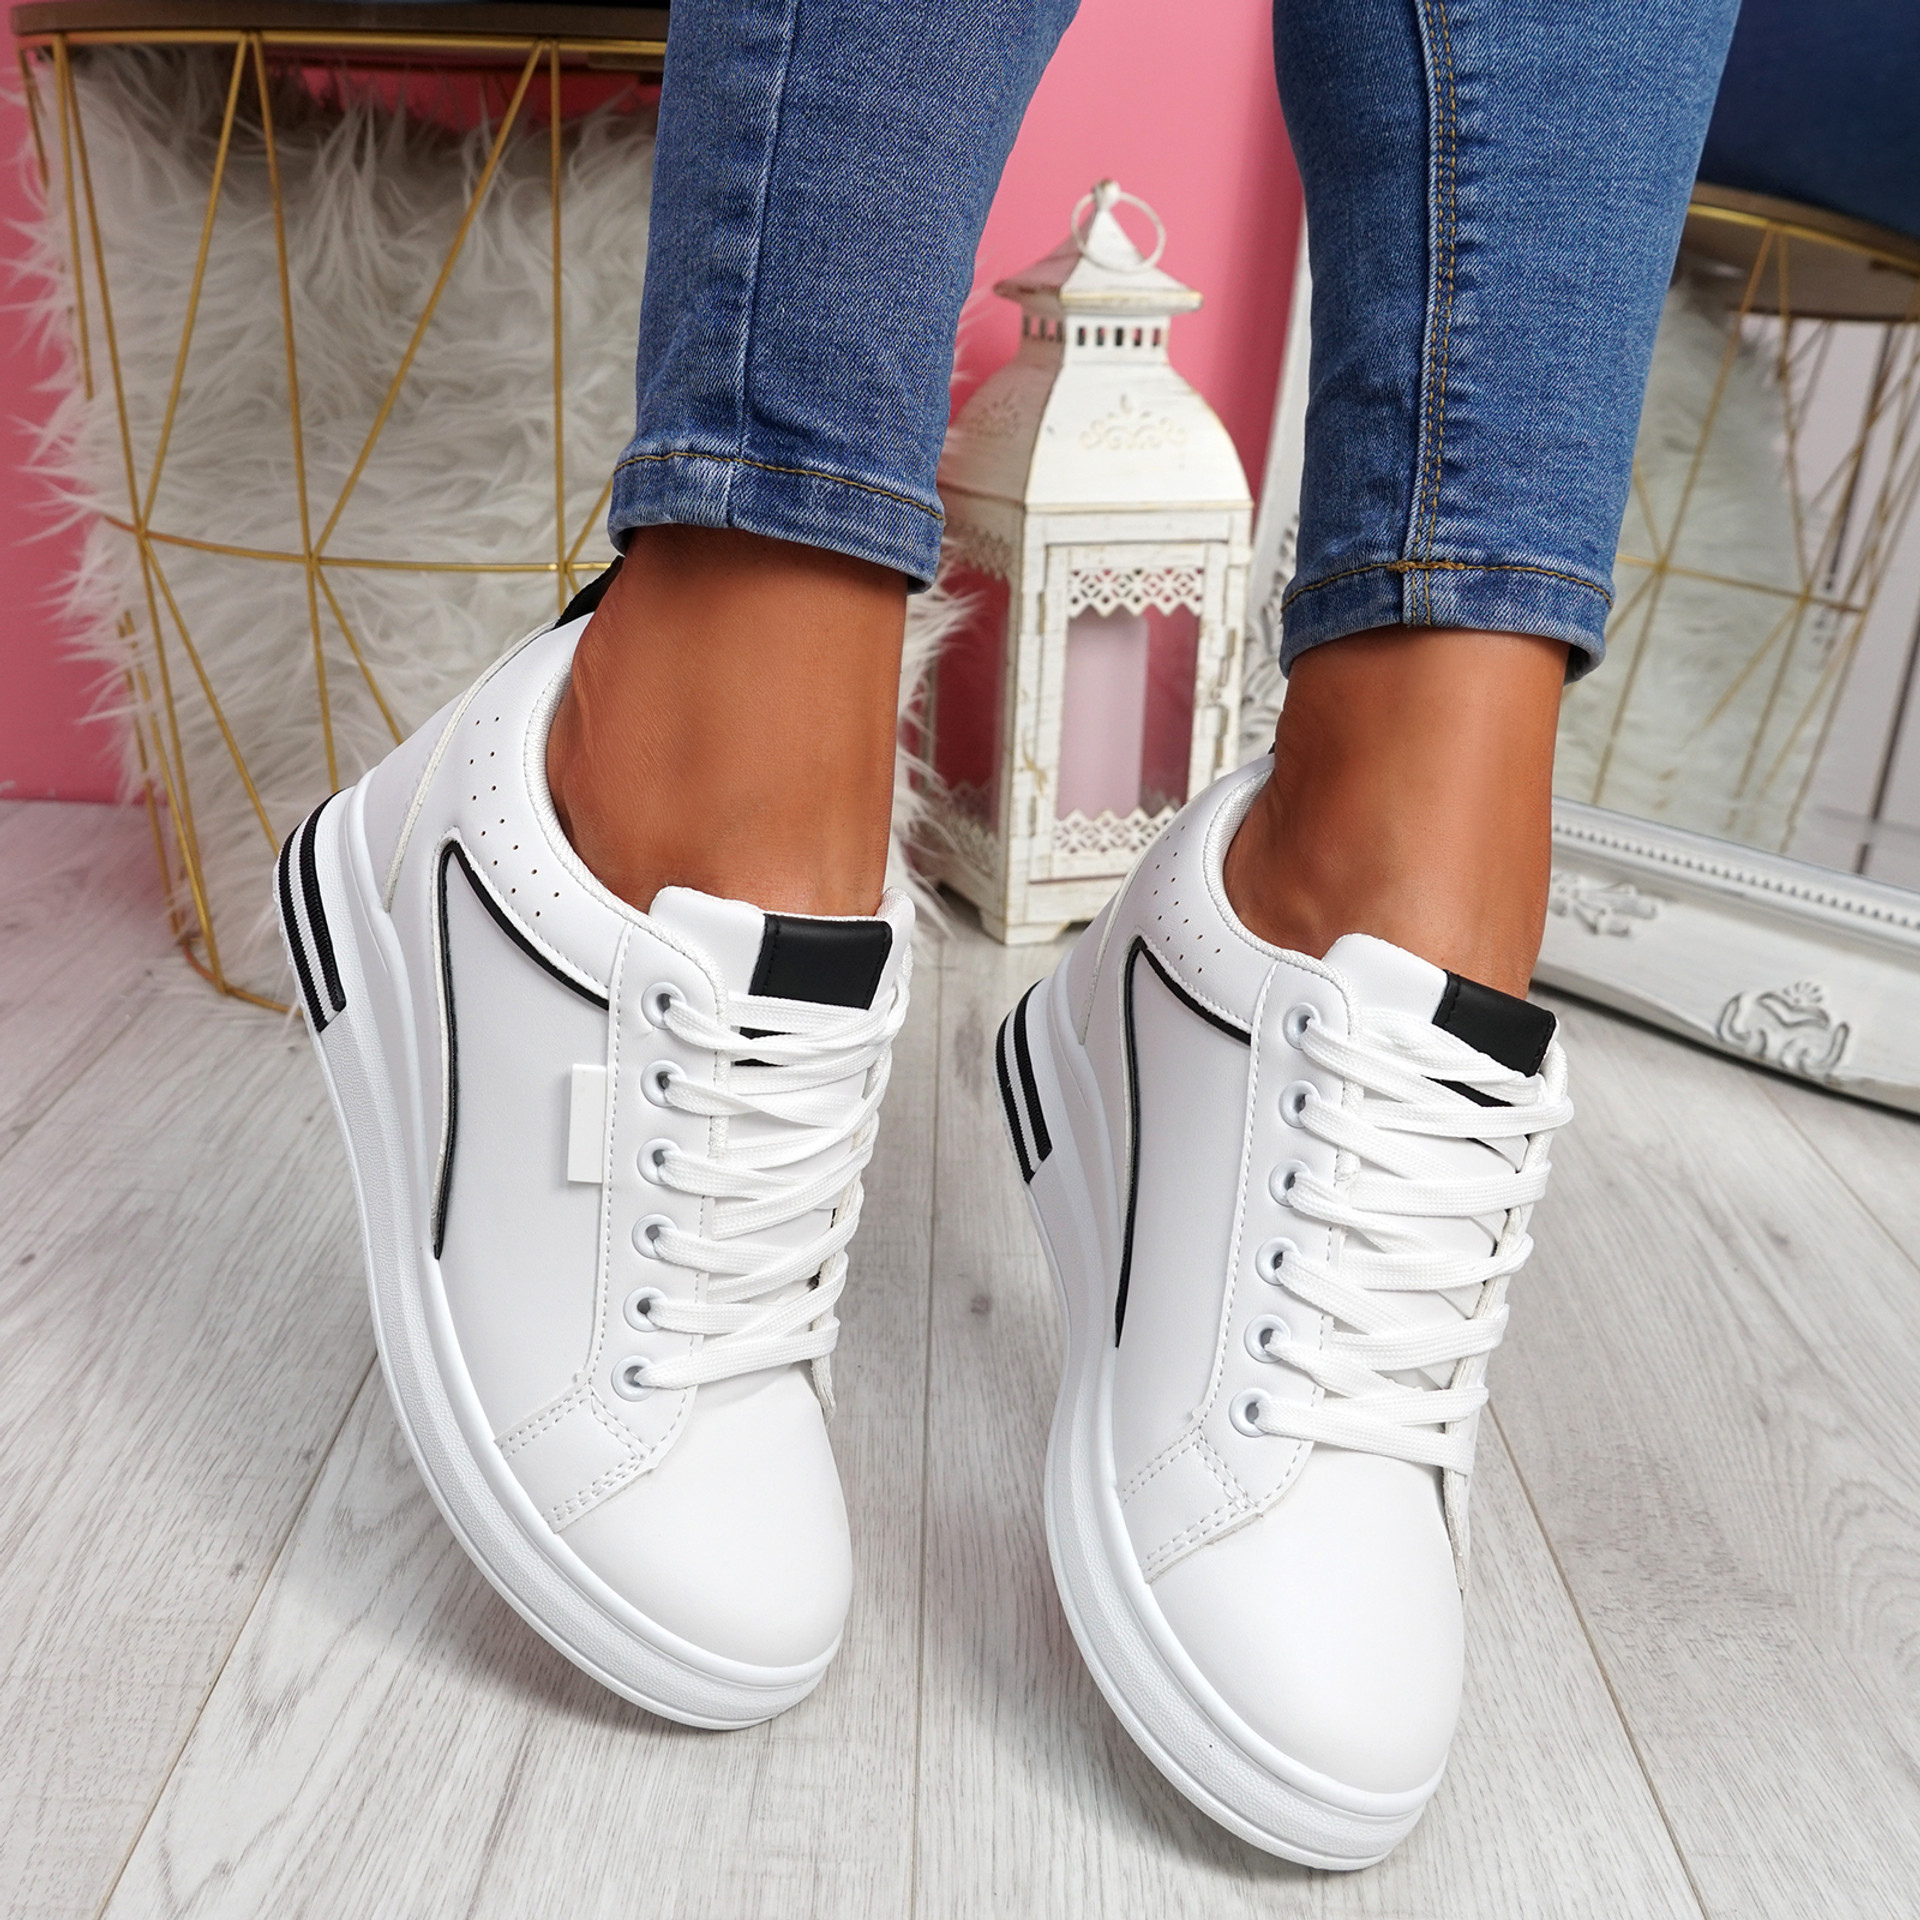 Sonna White Black Wedge Trainers